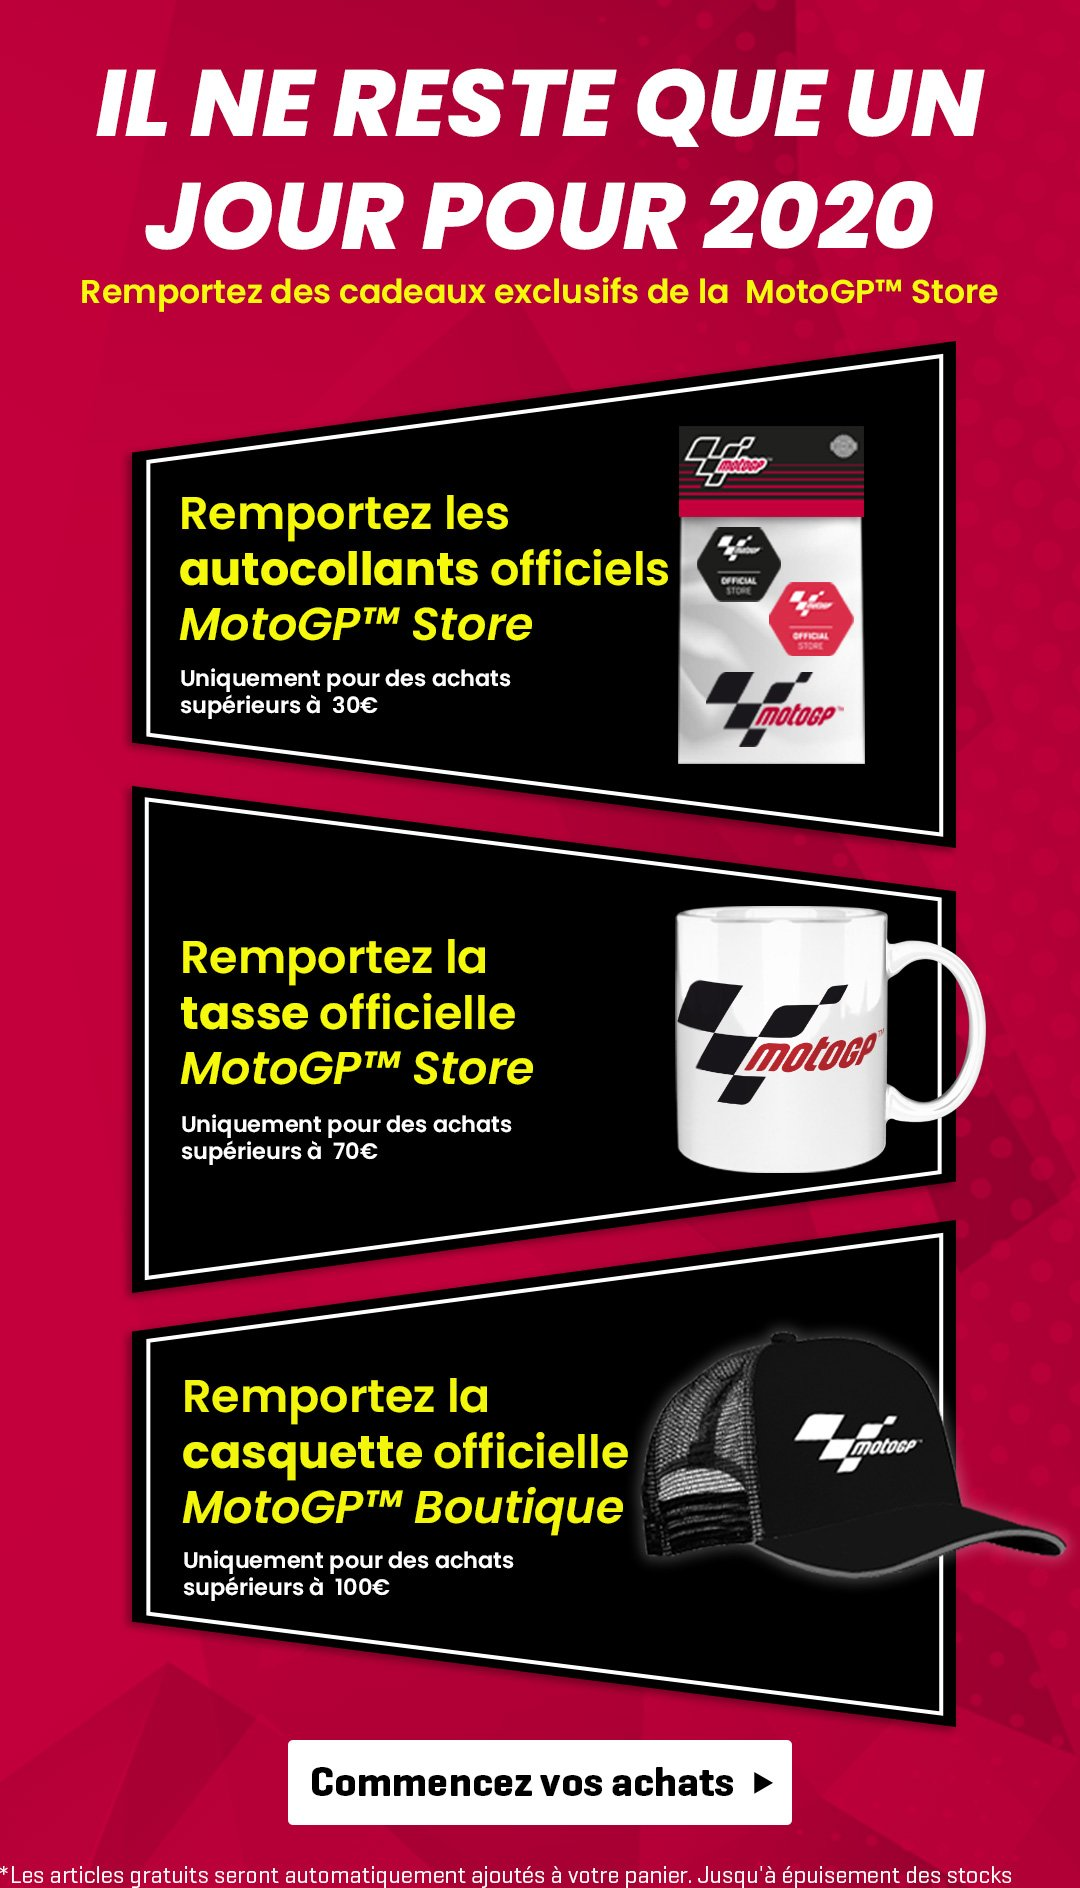 New year eve MotoGP promotion